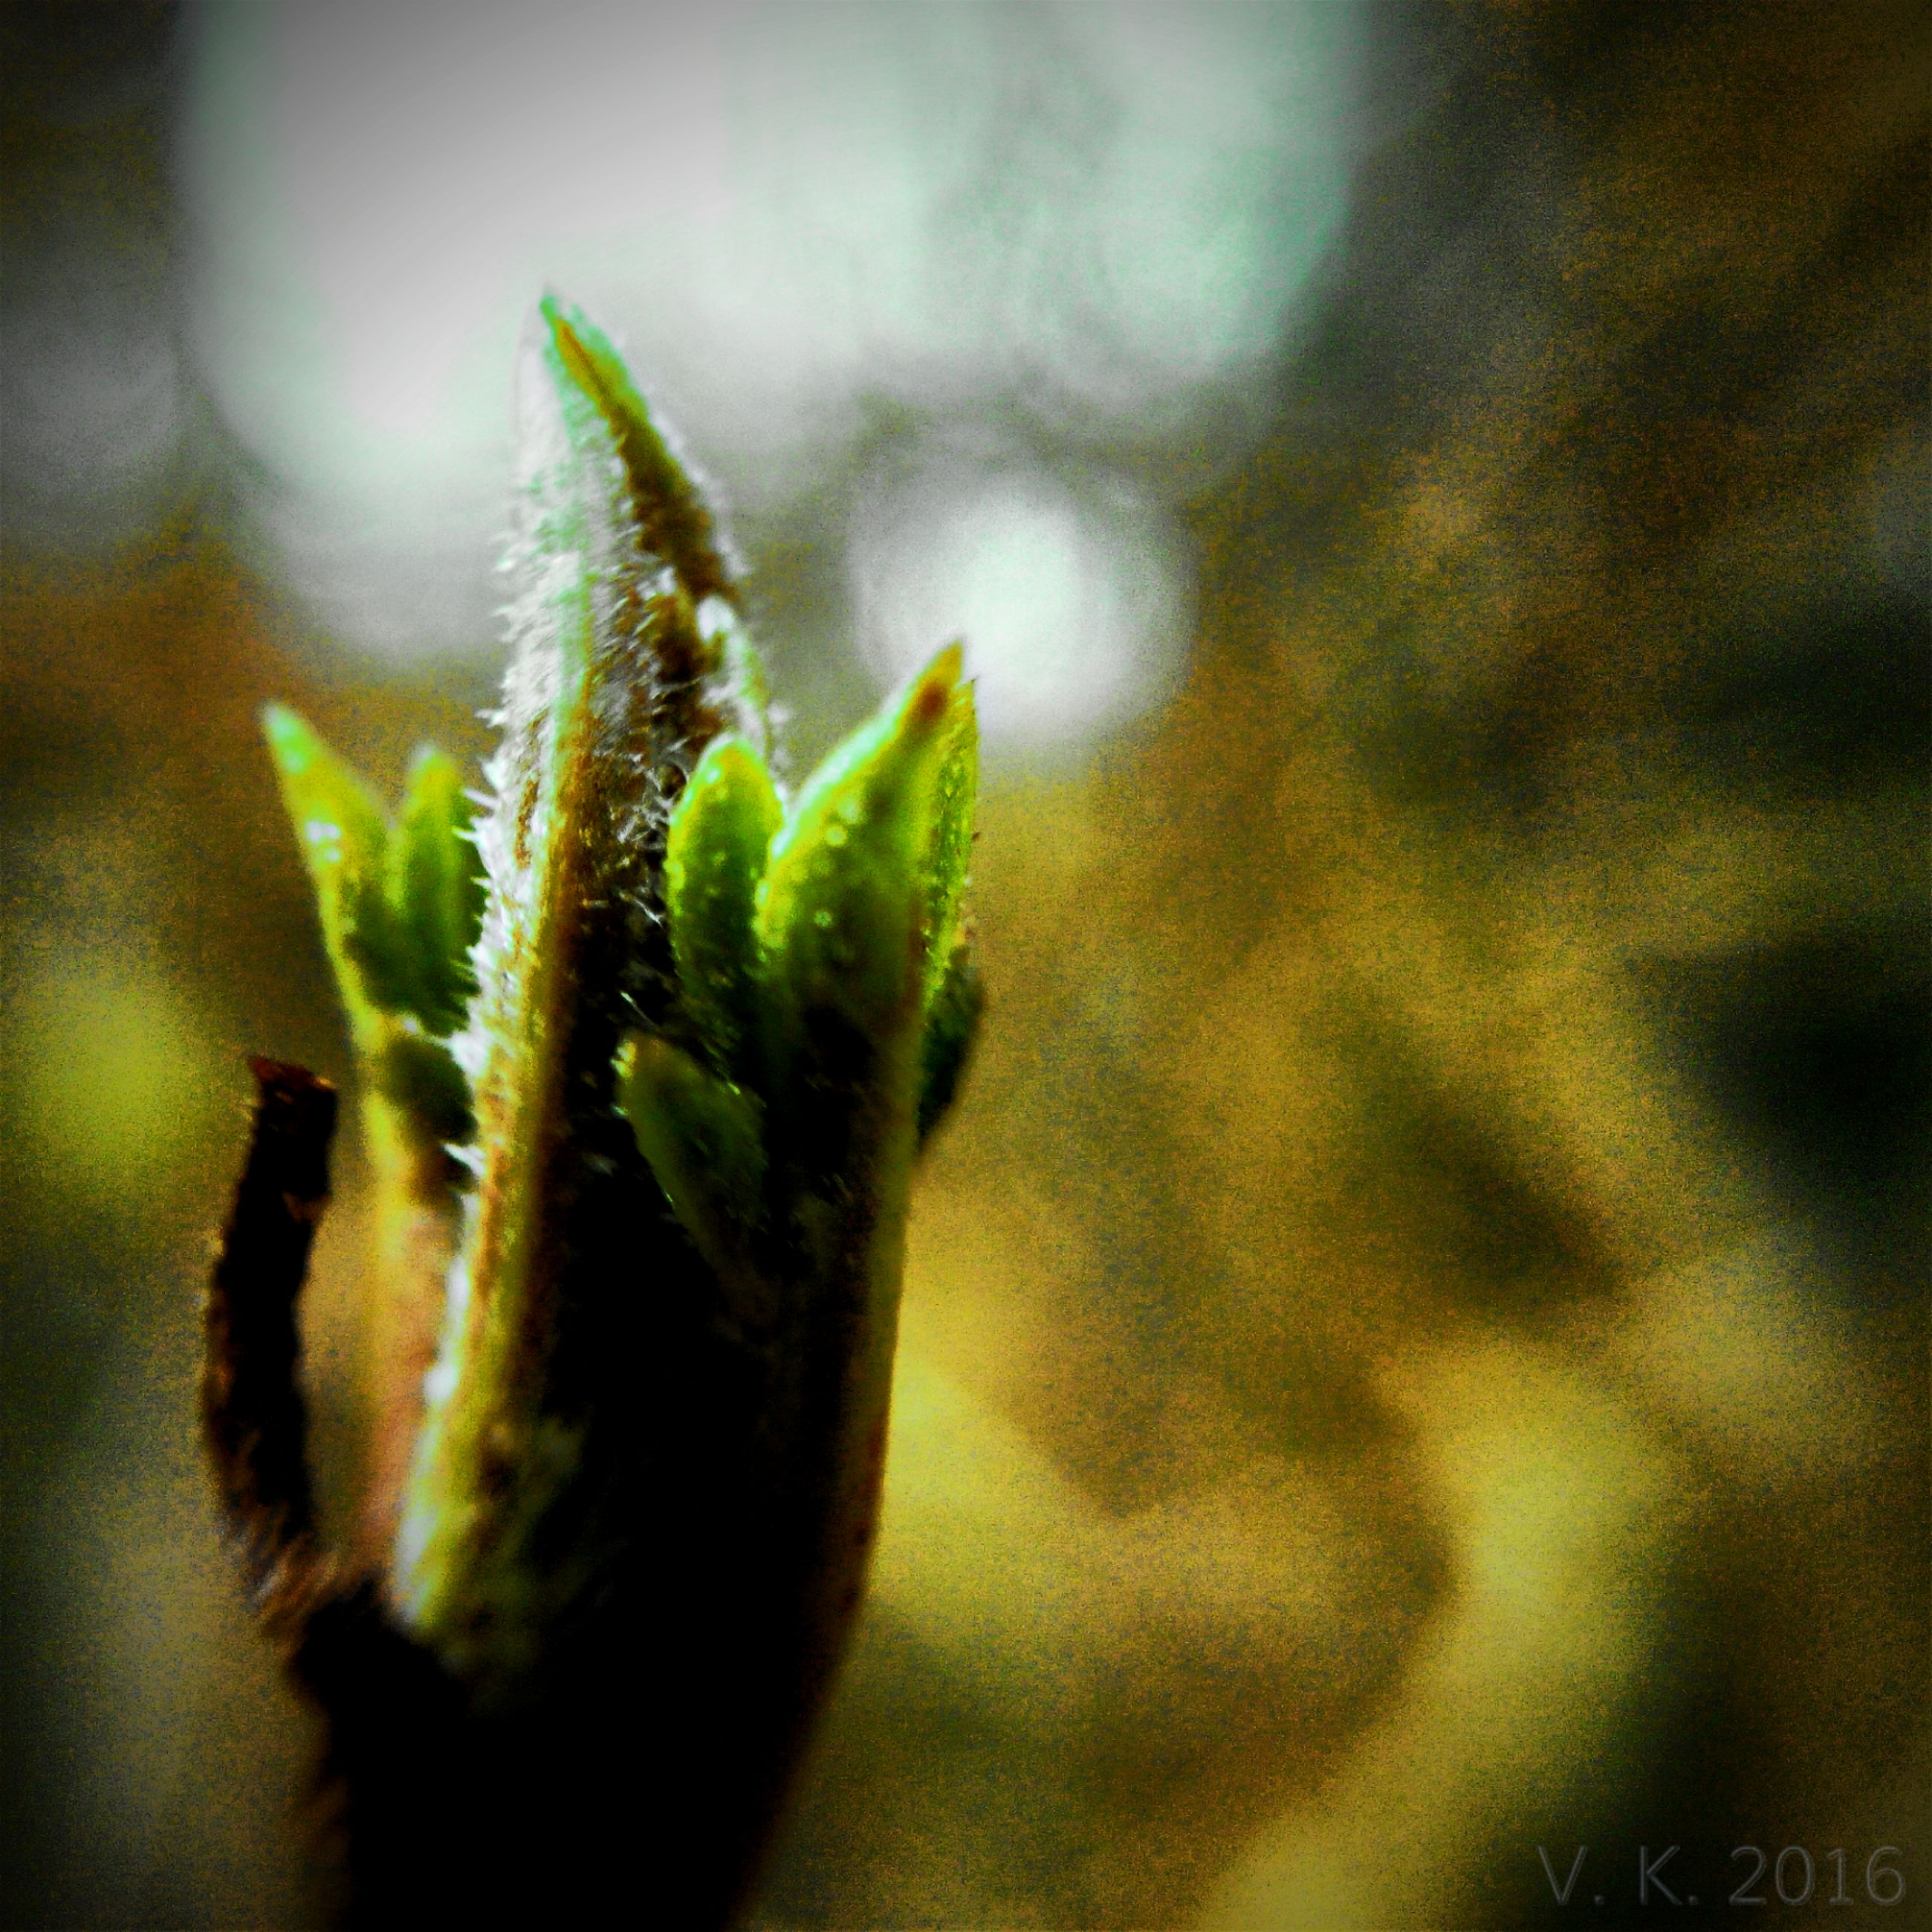 growth, plant, close-up, green color, focus on foreground, nature, selective focus, leaf, bud, beginnings, stem, freshness, new life, beauty in nature, fragility, spiked, growing, day, thorn, cactus